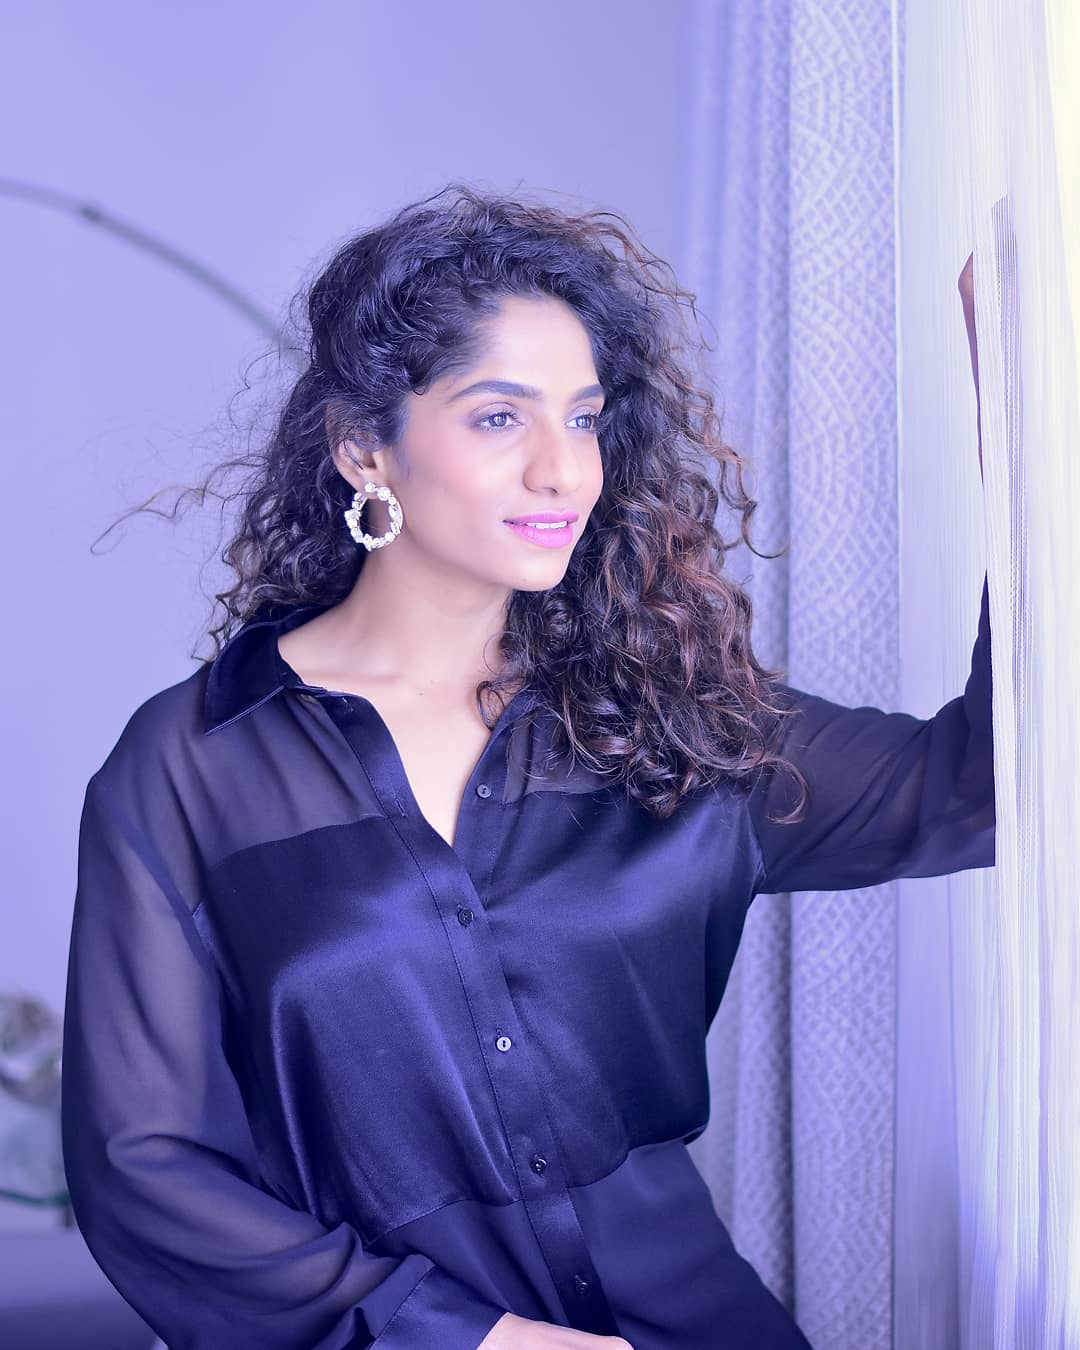 Jamie Lever is the daughter of Indian comedian Johnny Lever